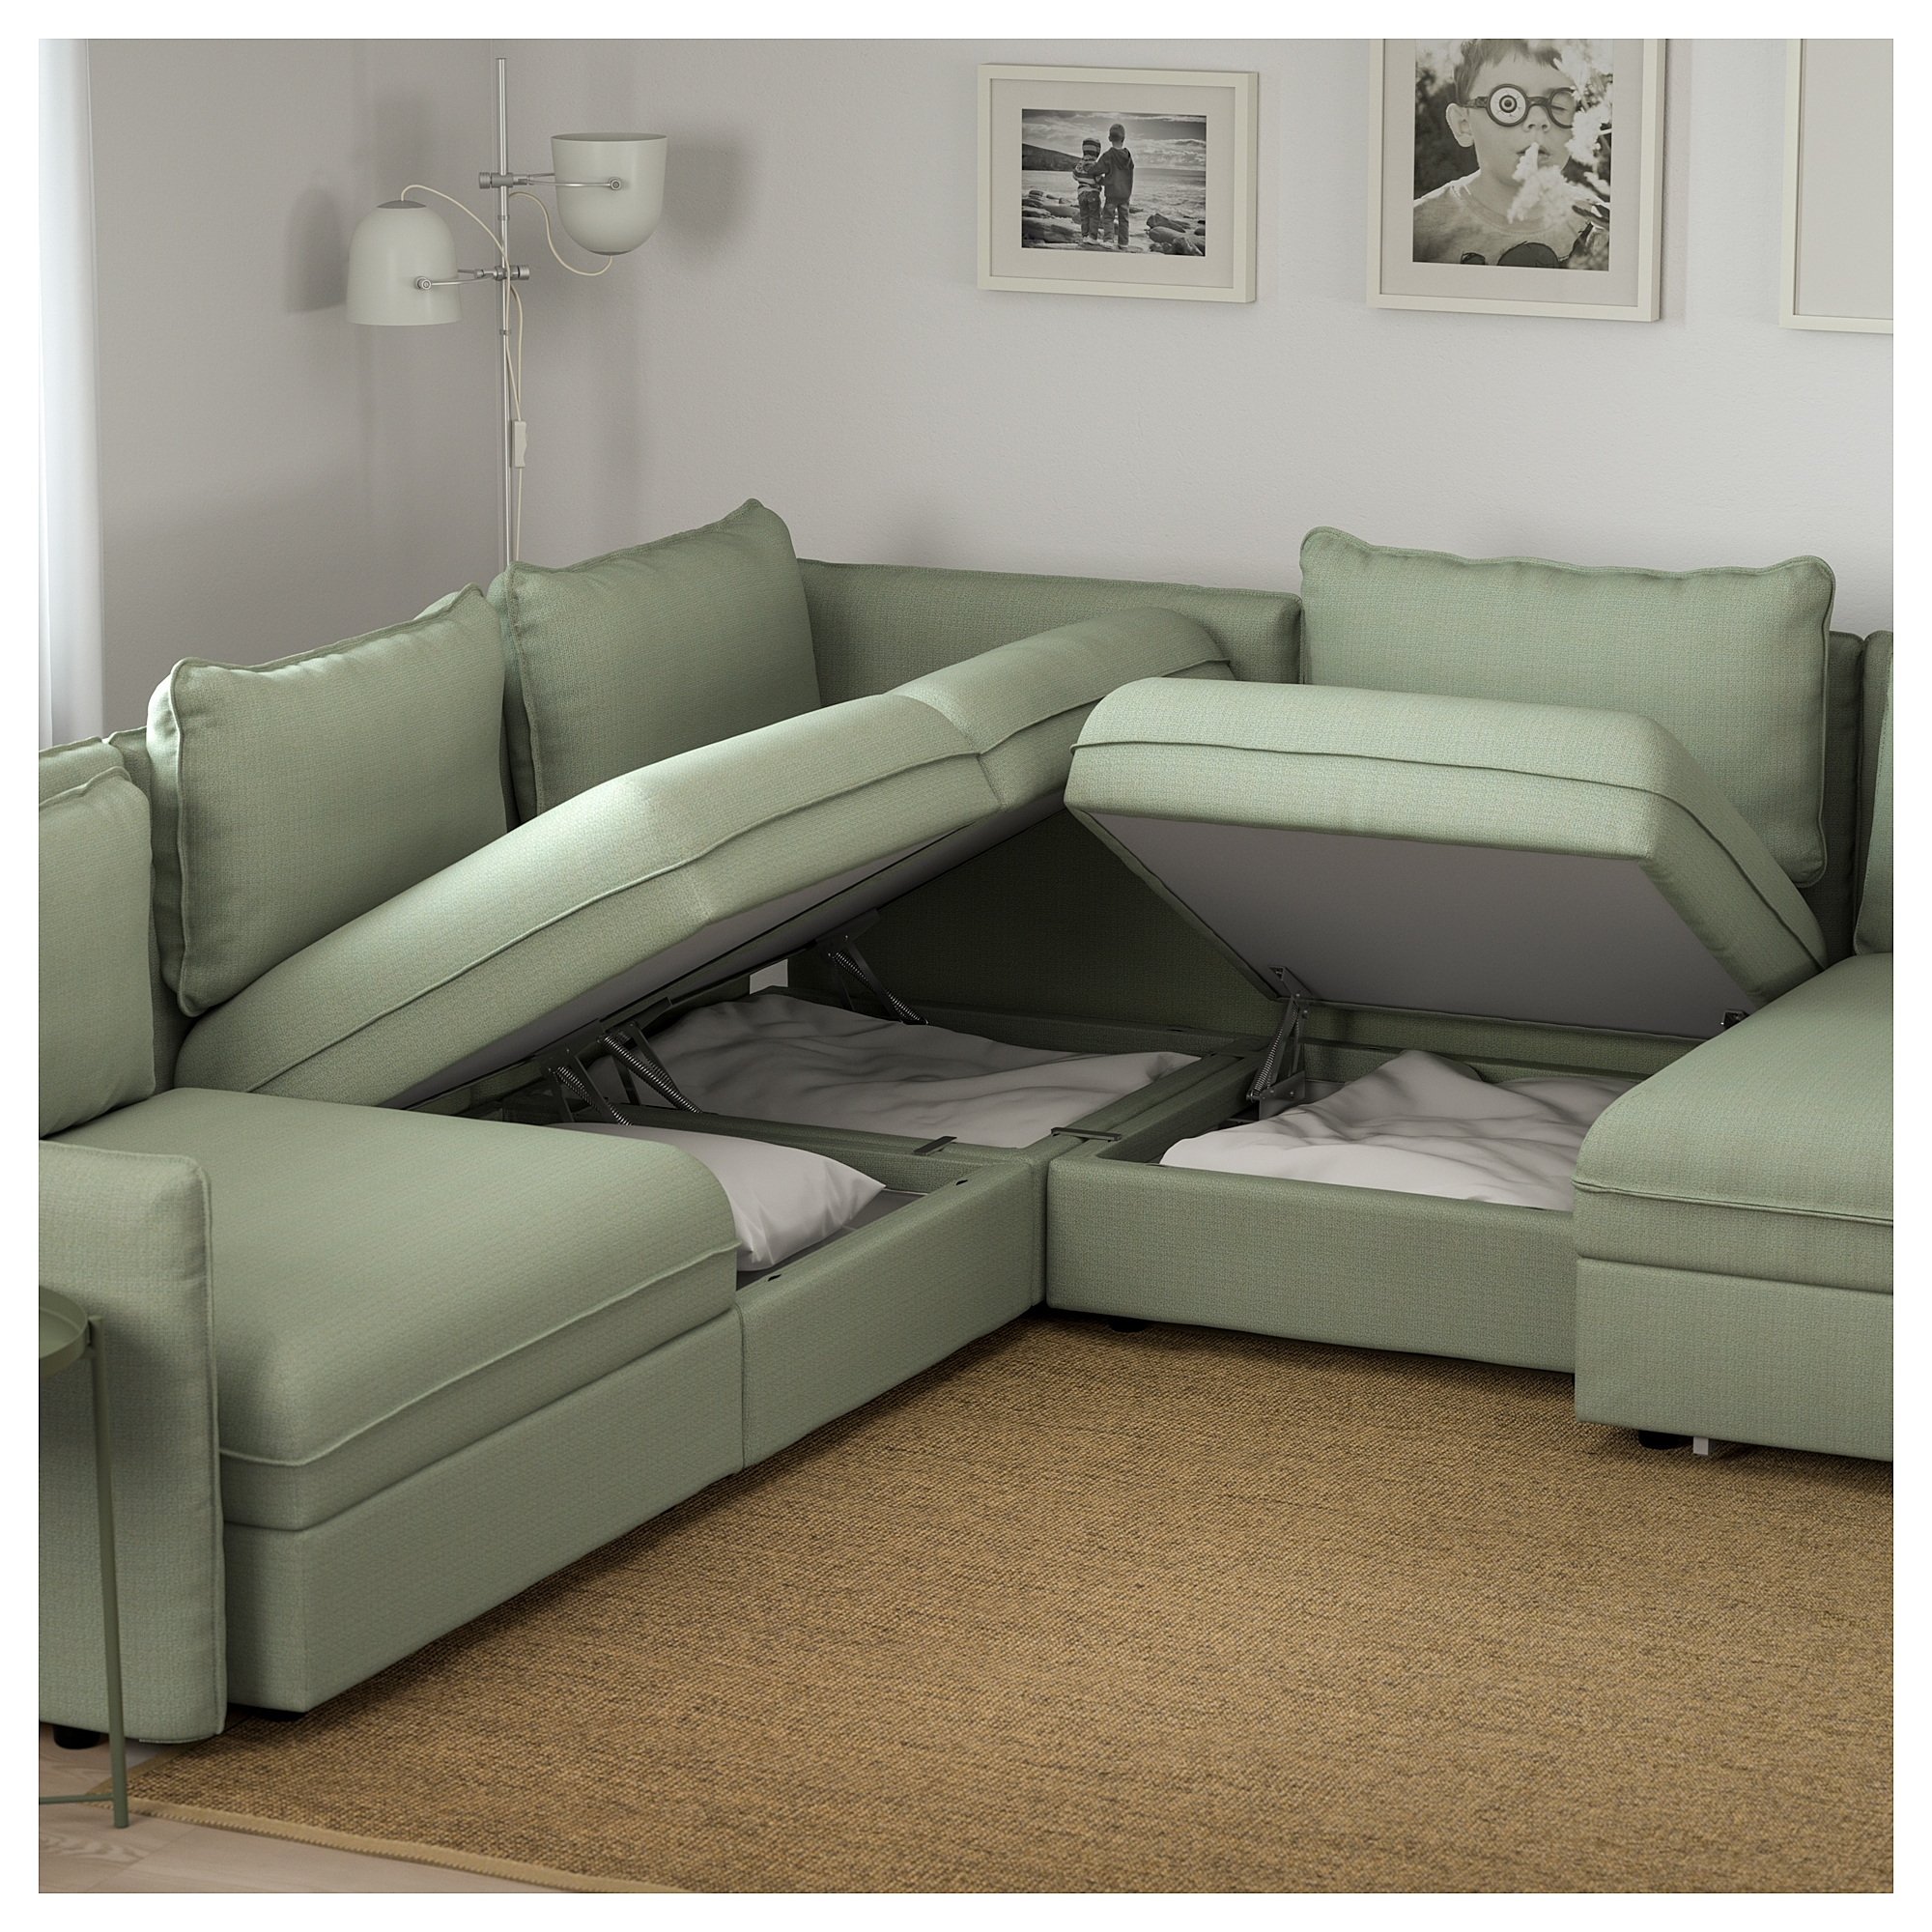 Vallentuna 6 Seat Corner Sofa With Bed Hillared Green – Ikea Intended For Ikea Corner Sofas With Storage (View 8 of 10)